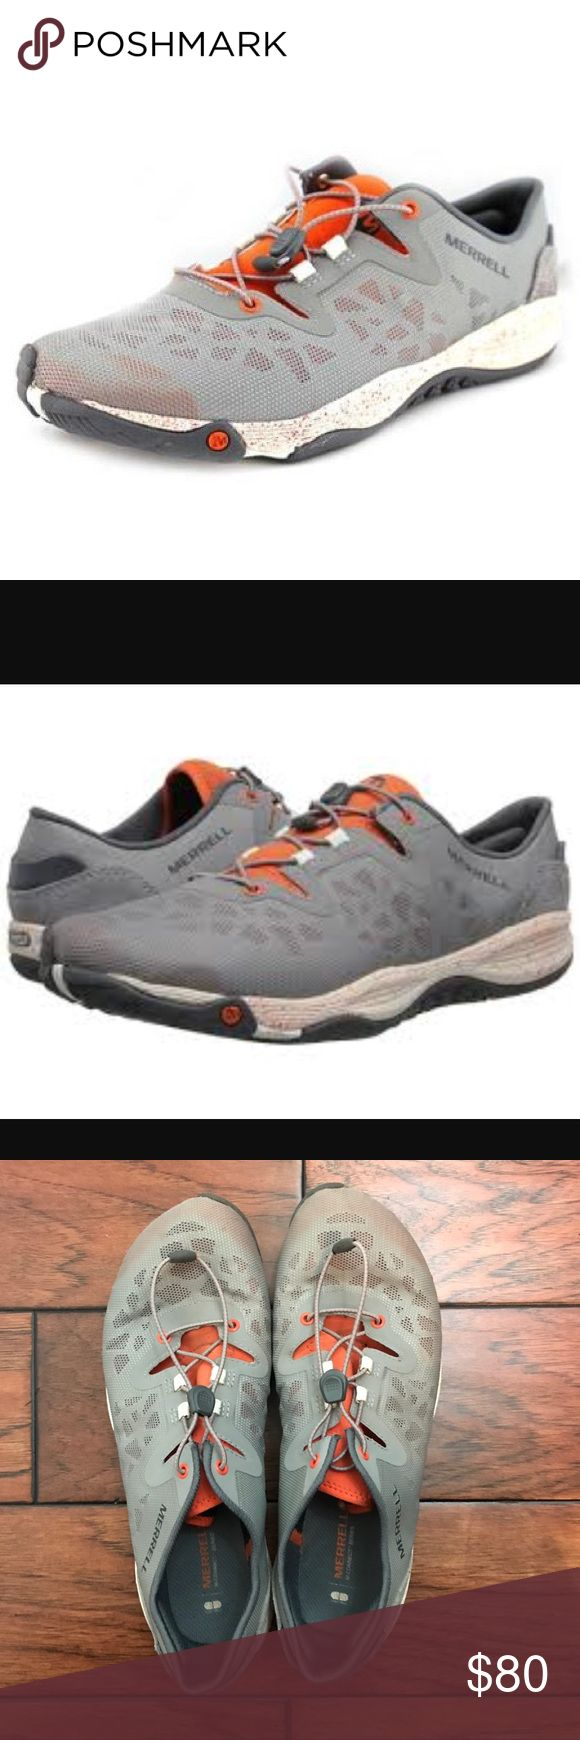 Merrell All Out Shine Shoes Trail Walking Size 9 Excellent condition. No flaws. Look hardly worn! Merrells All Out Shine Wild Dove Shoes. Lightweight with a mesh upper. Drawstring type laces. Size 9. Merrell Shoes Athletic Shoes